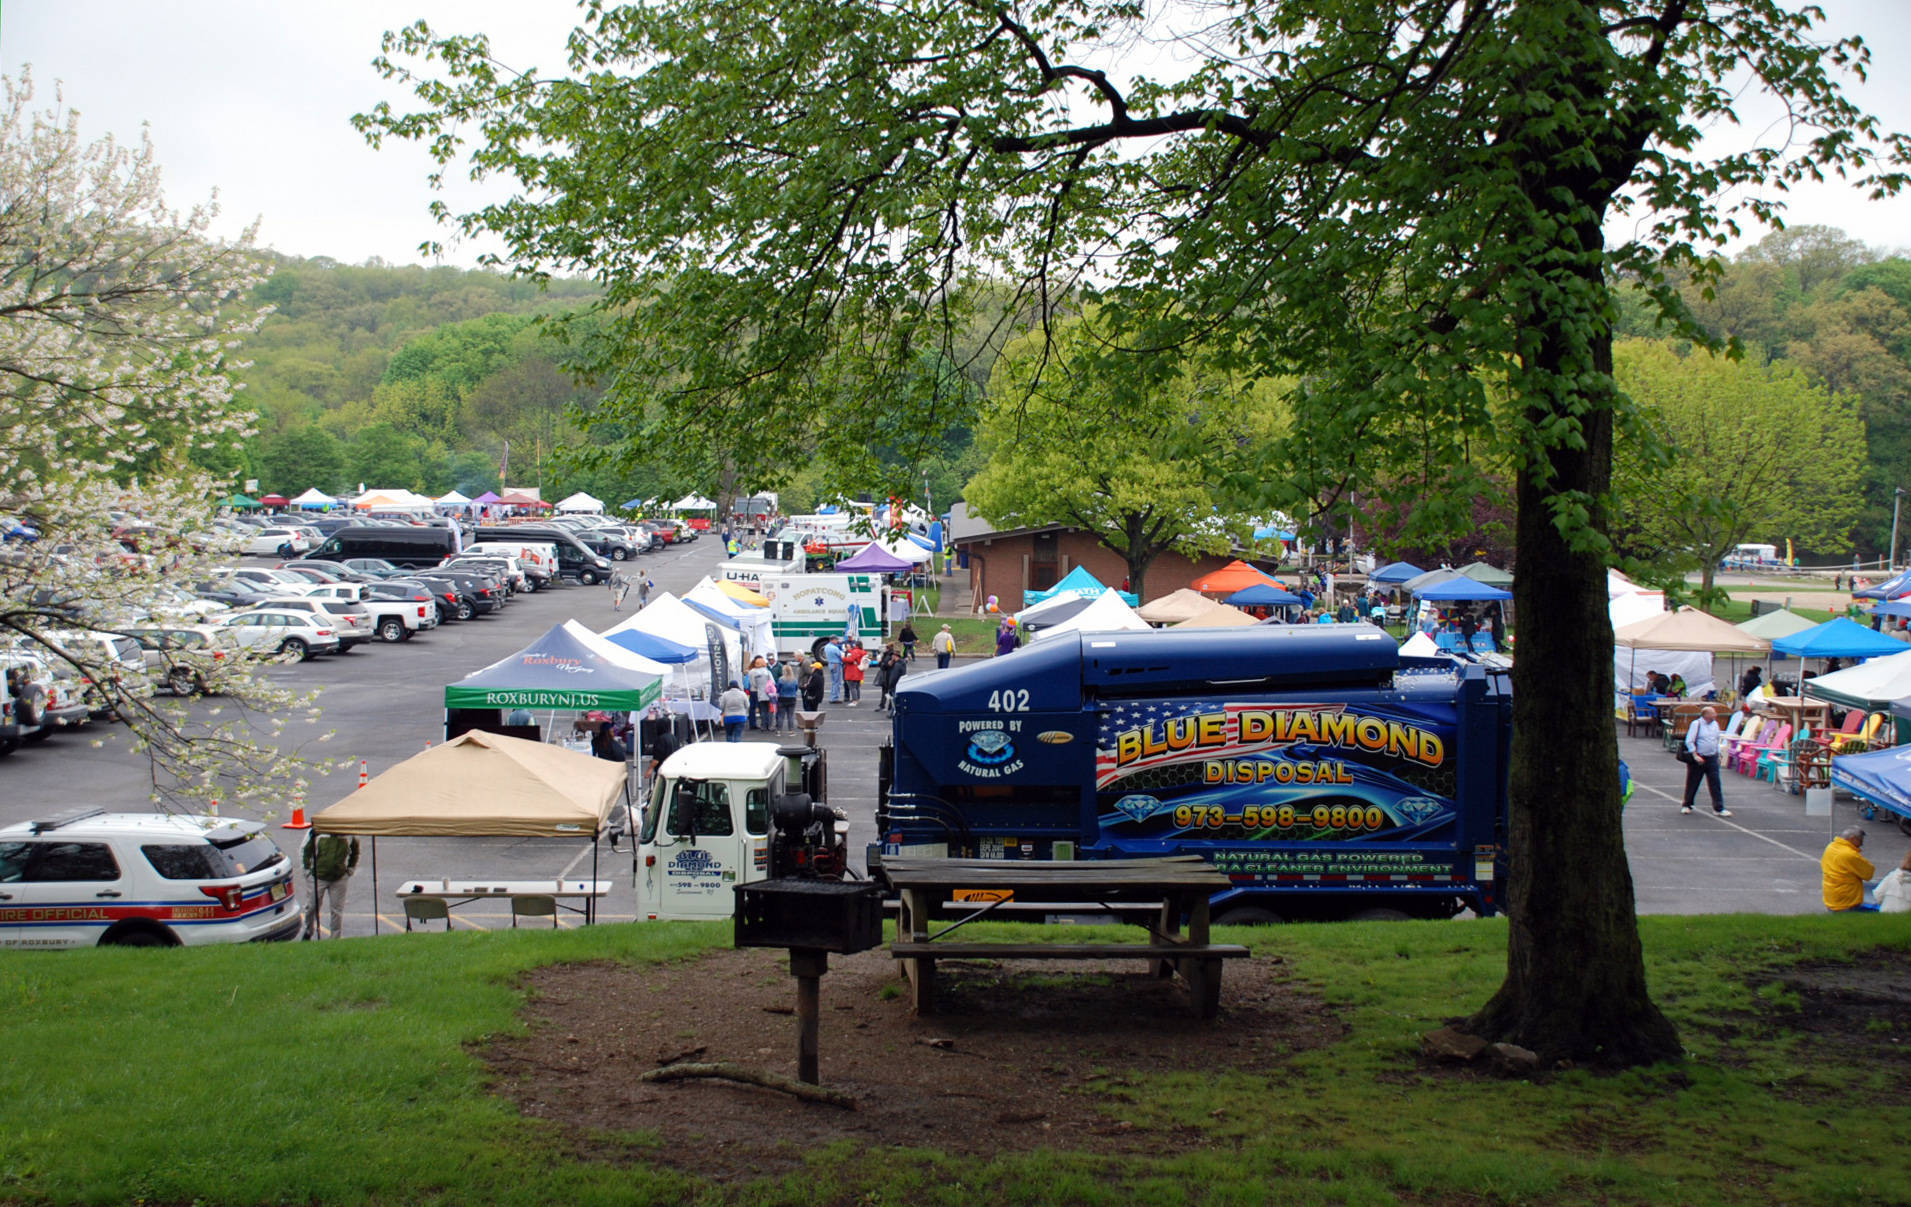 More than 180 vendors gathered at Hopatcong State Park on May 12, 2018, for the 5th Annual Lake Hopatcong Block Party.jpg